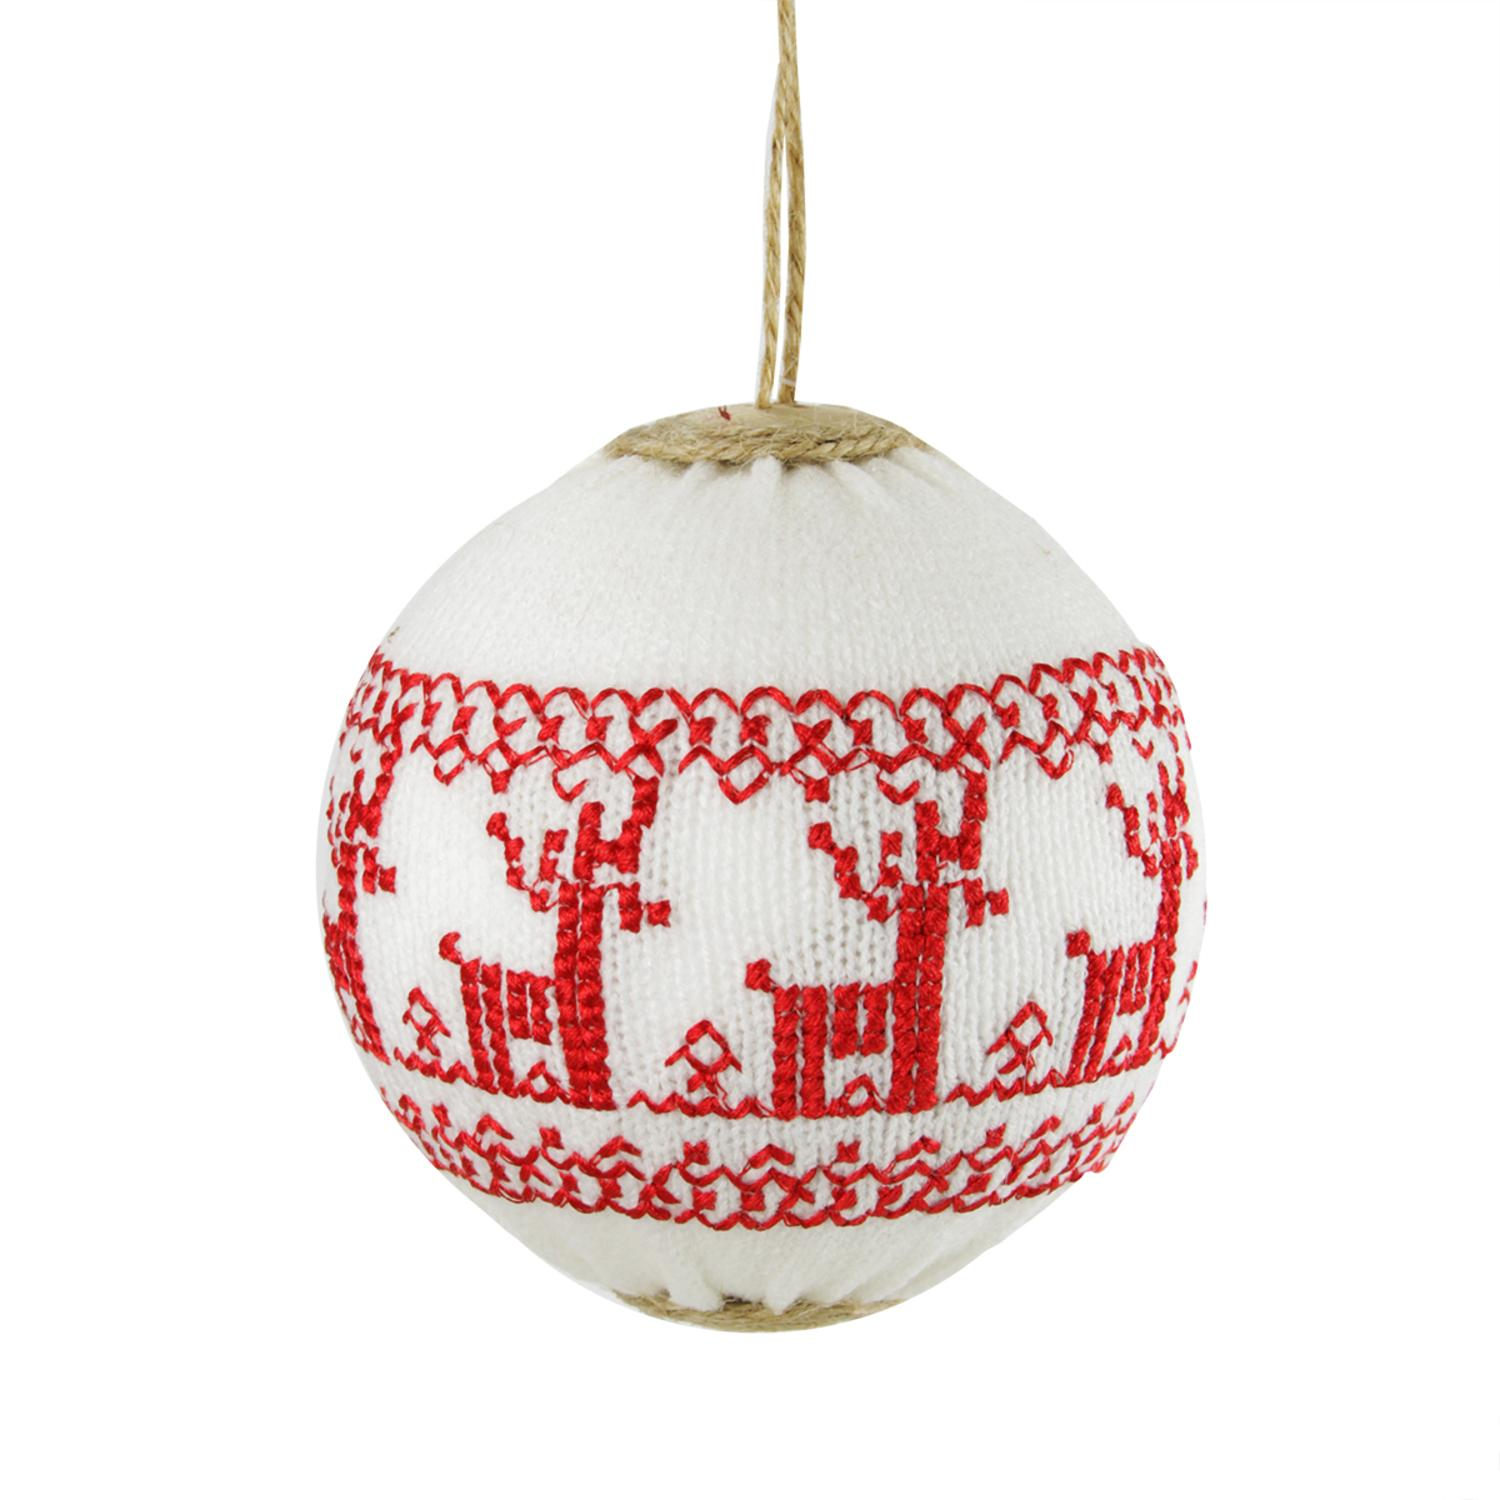 """4"""" Alpine Chic White with Red Deer Nordic Design Christmas Ball Ornament - image 1 of 1"""